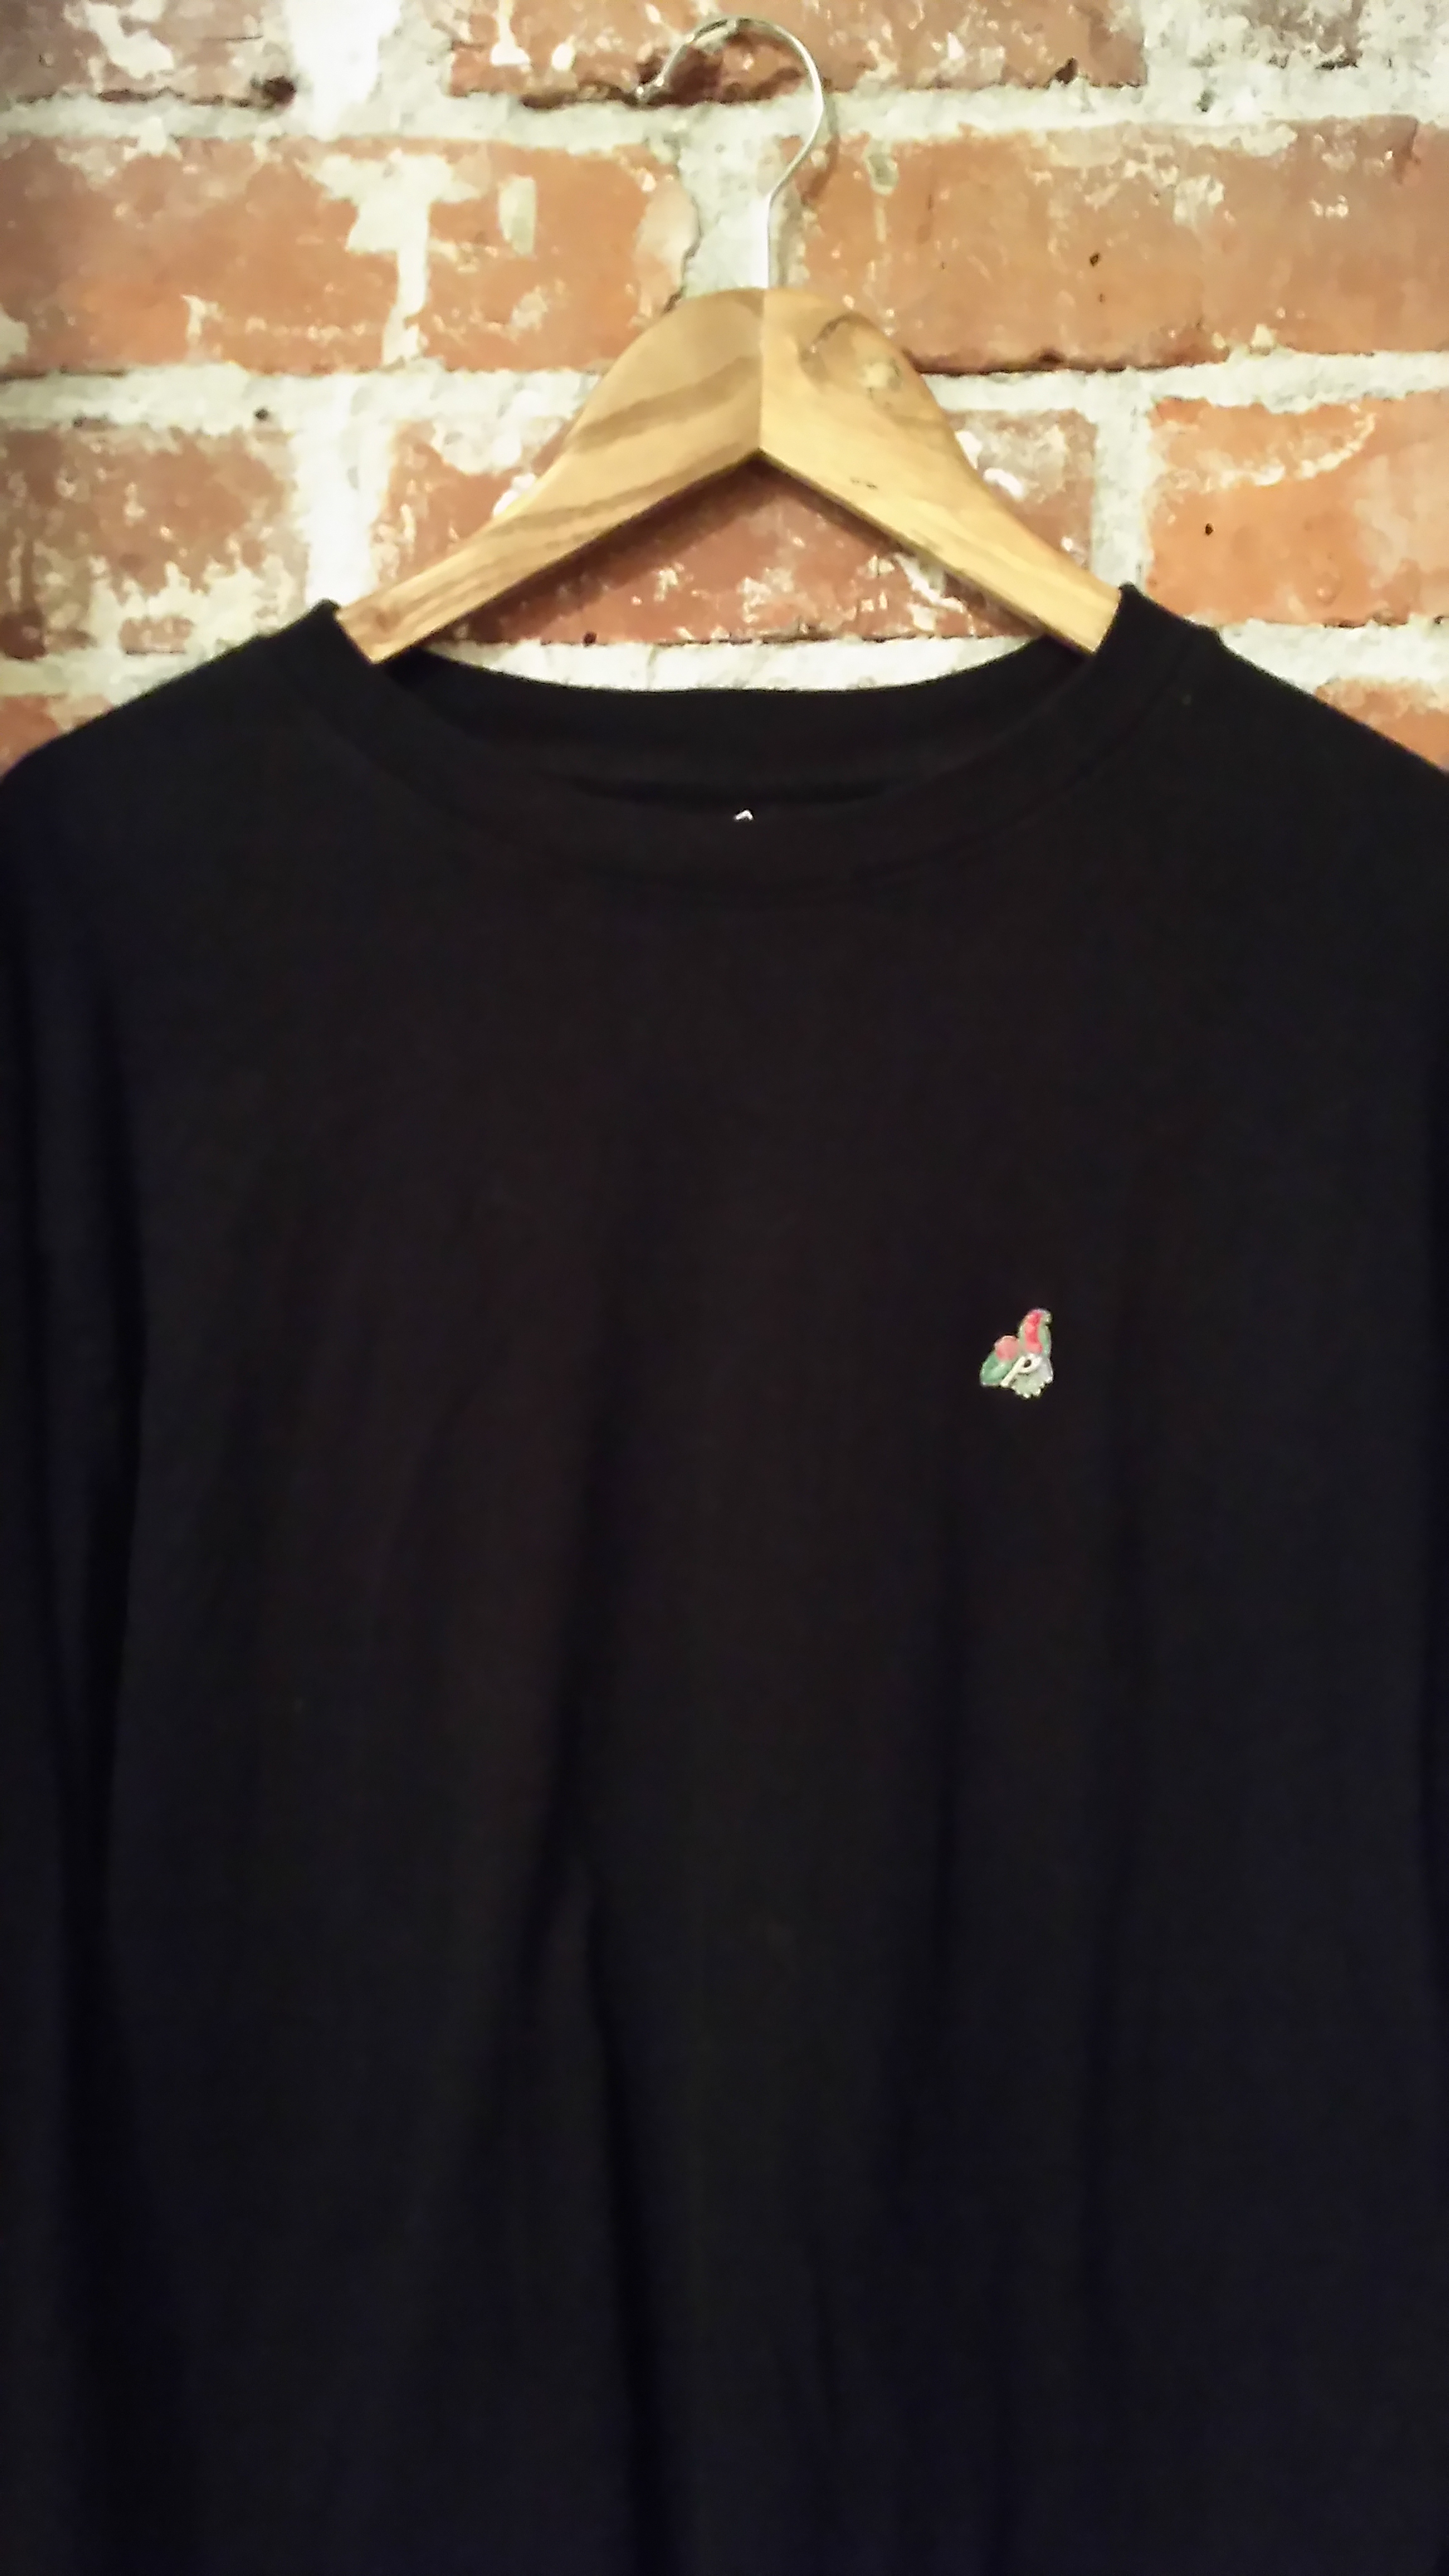 832a7342 Palace Palace Long Sleeve Parrot Tee | Grailed